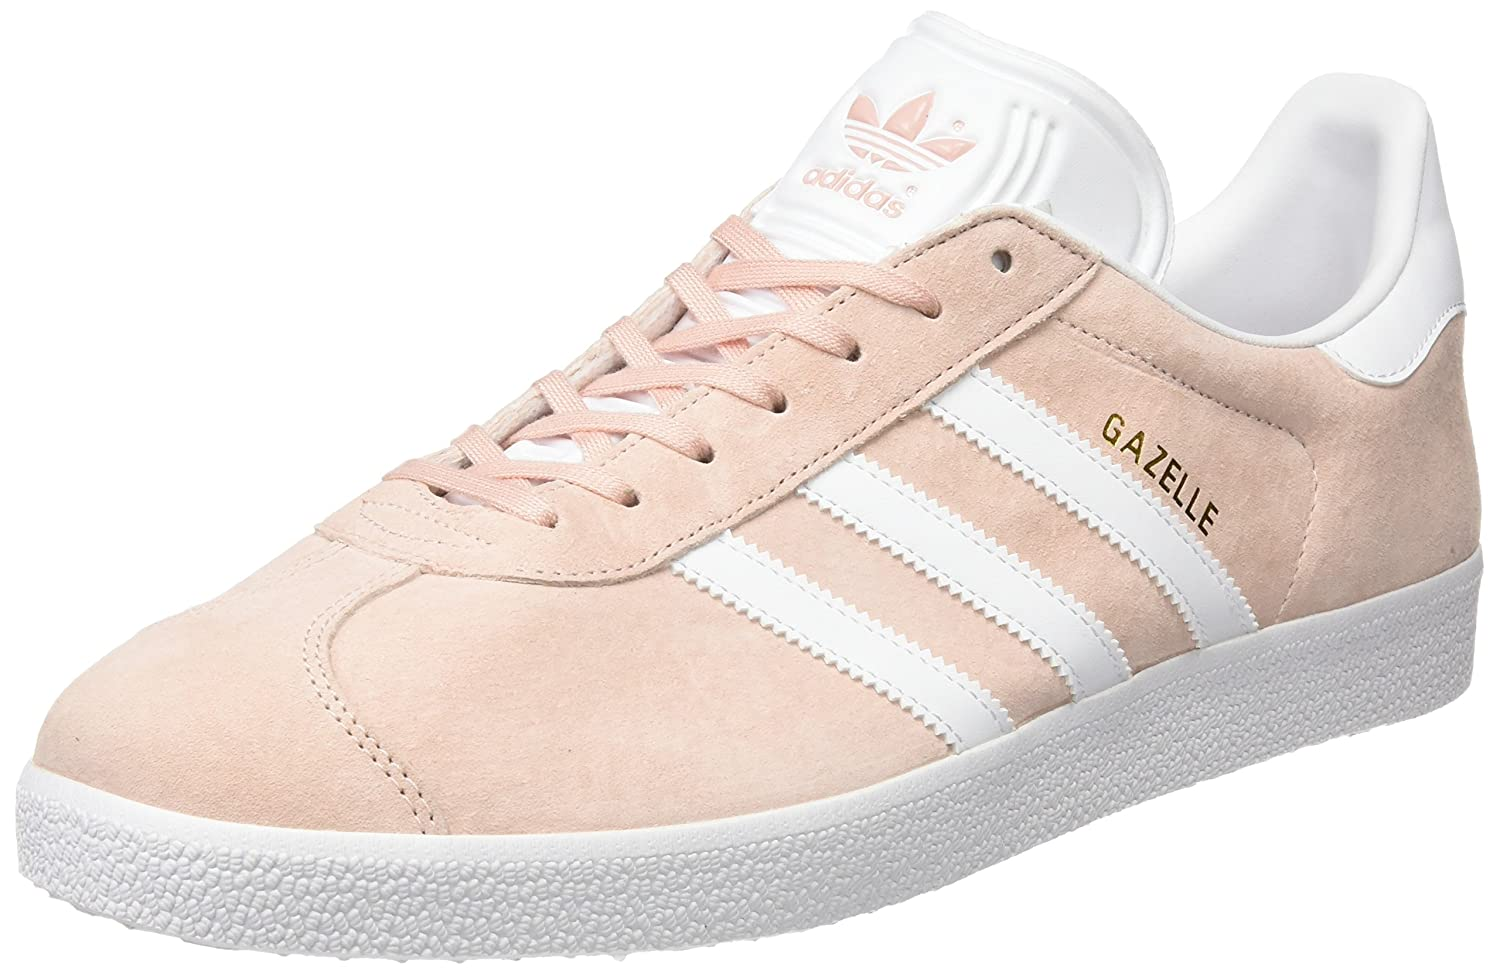 adidas Gazelle Zapatillas Unisex Adulto